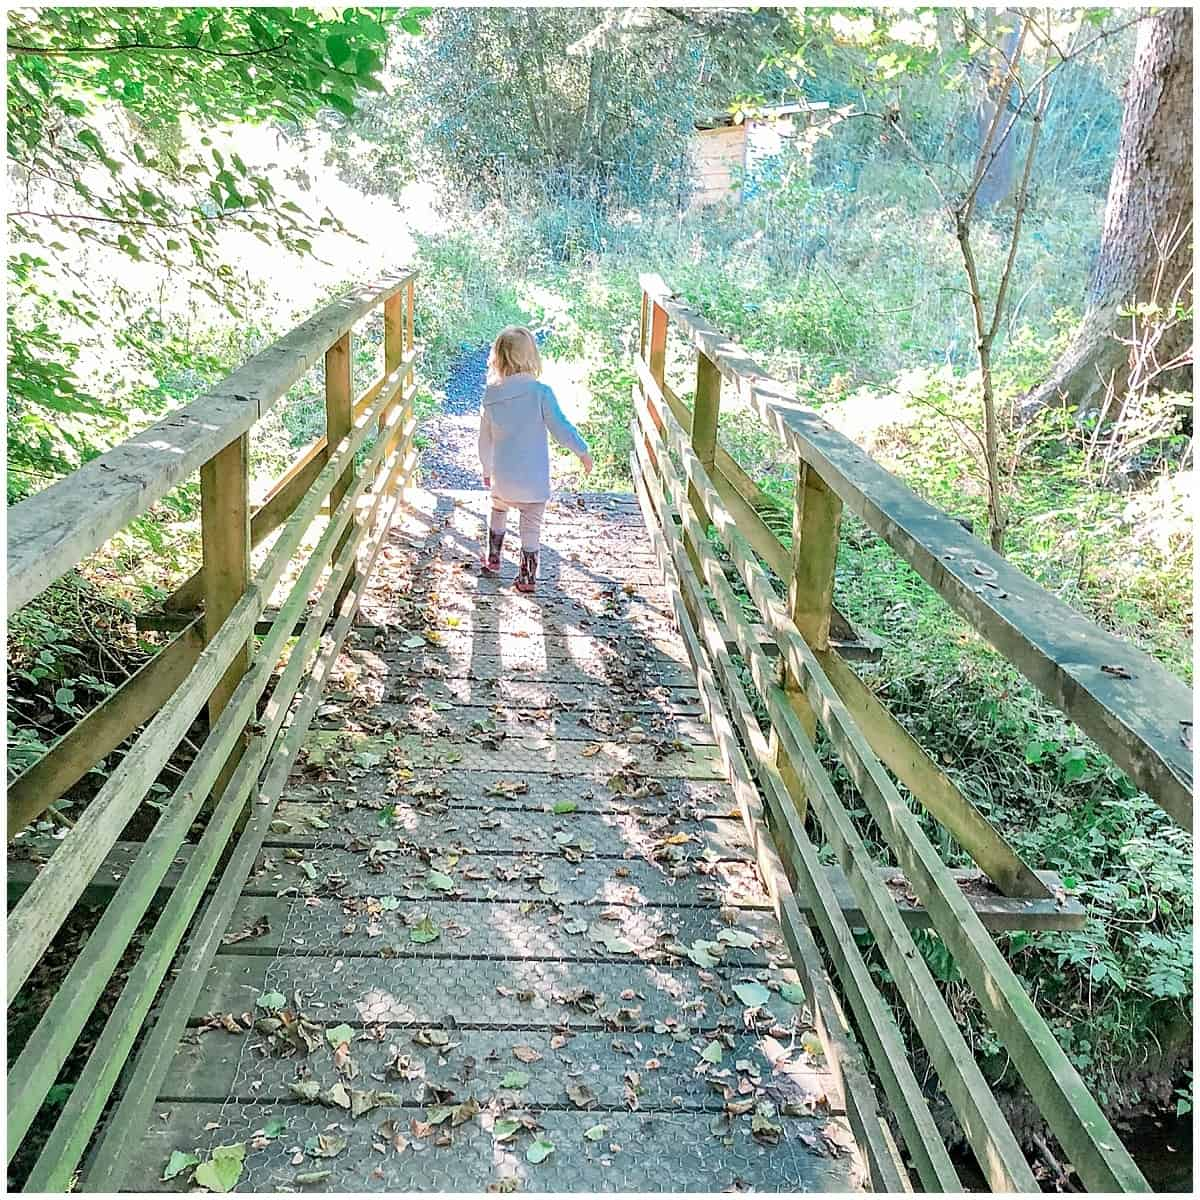 Toddler striding along a wooden path